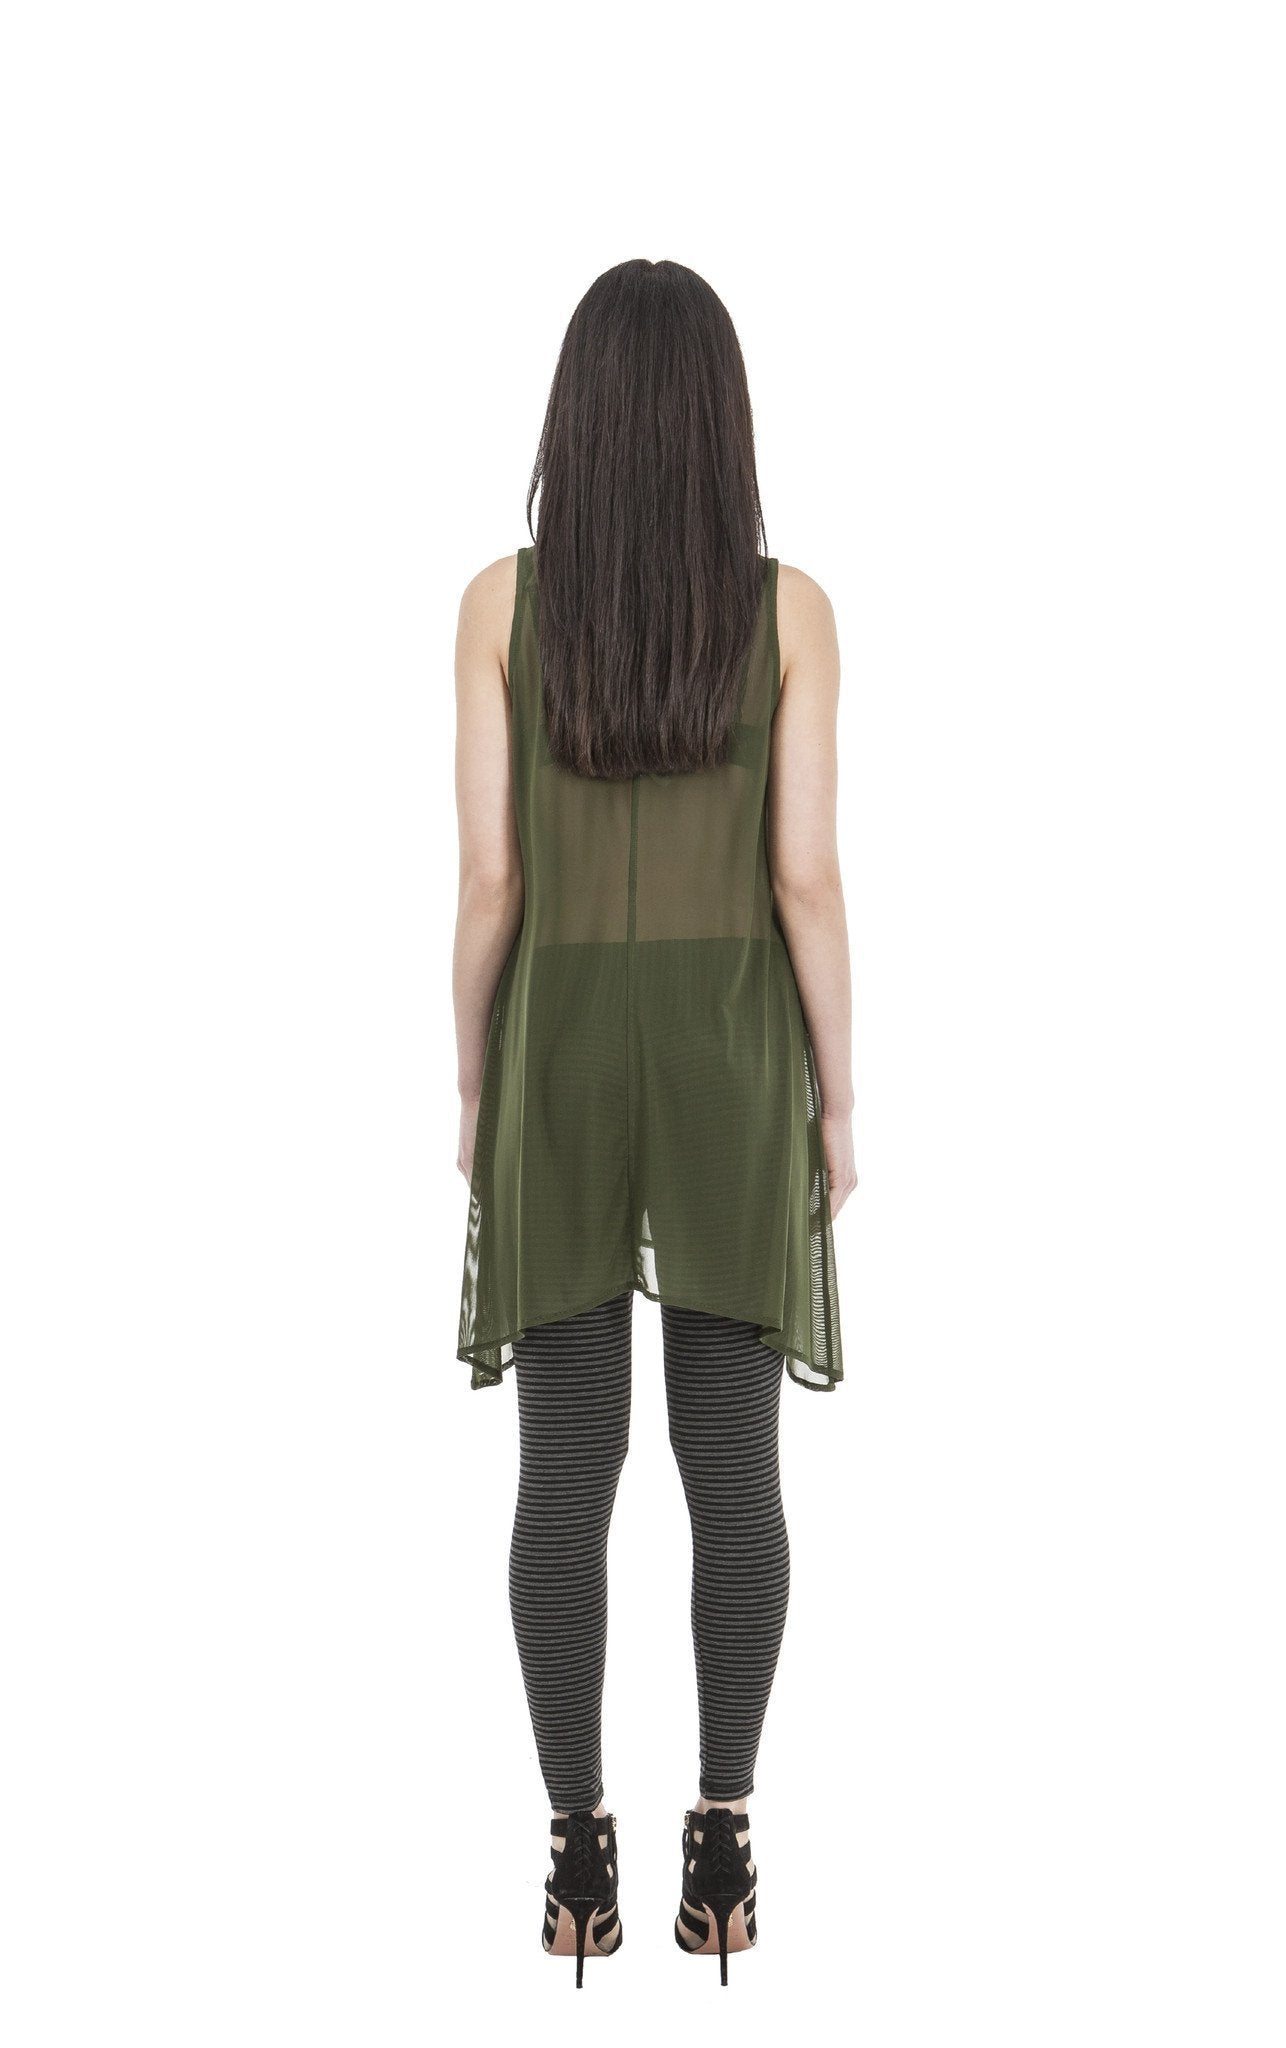 New Netty Betty Long Sheer Top | Olive